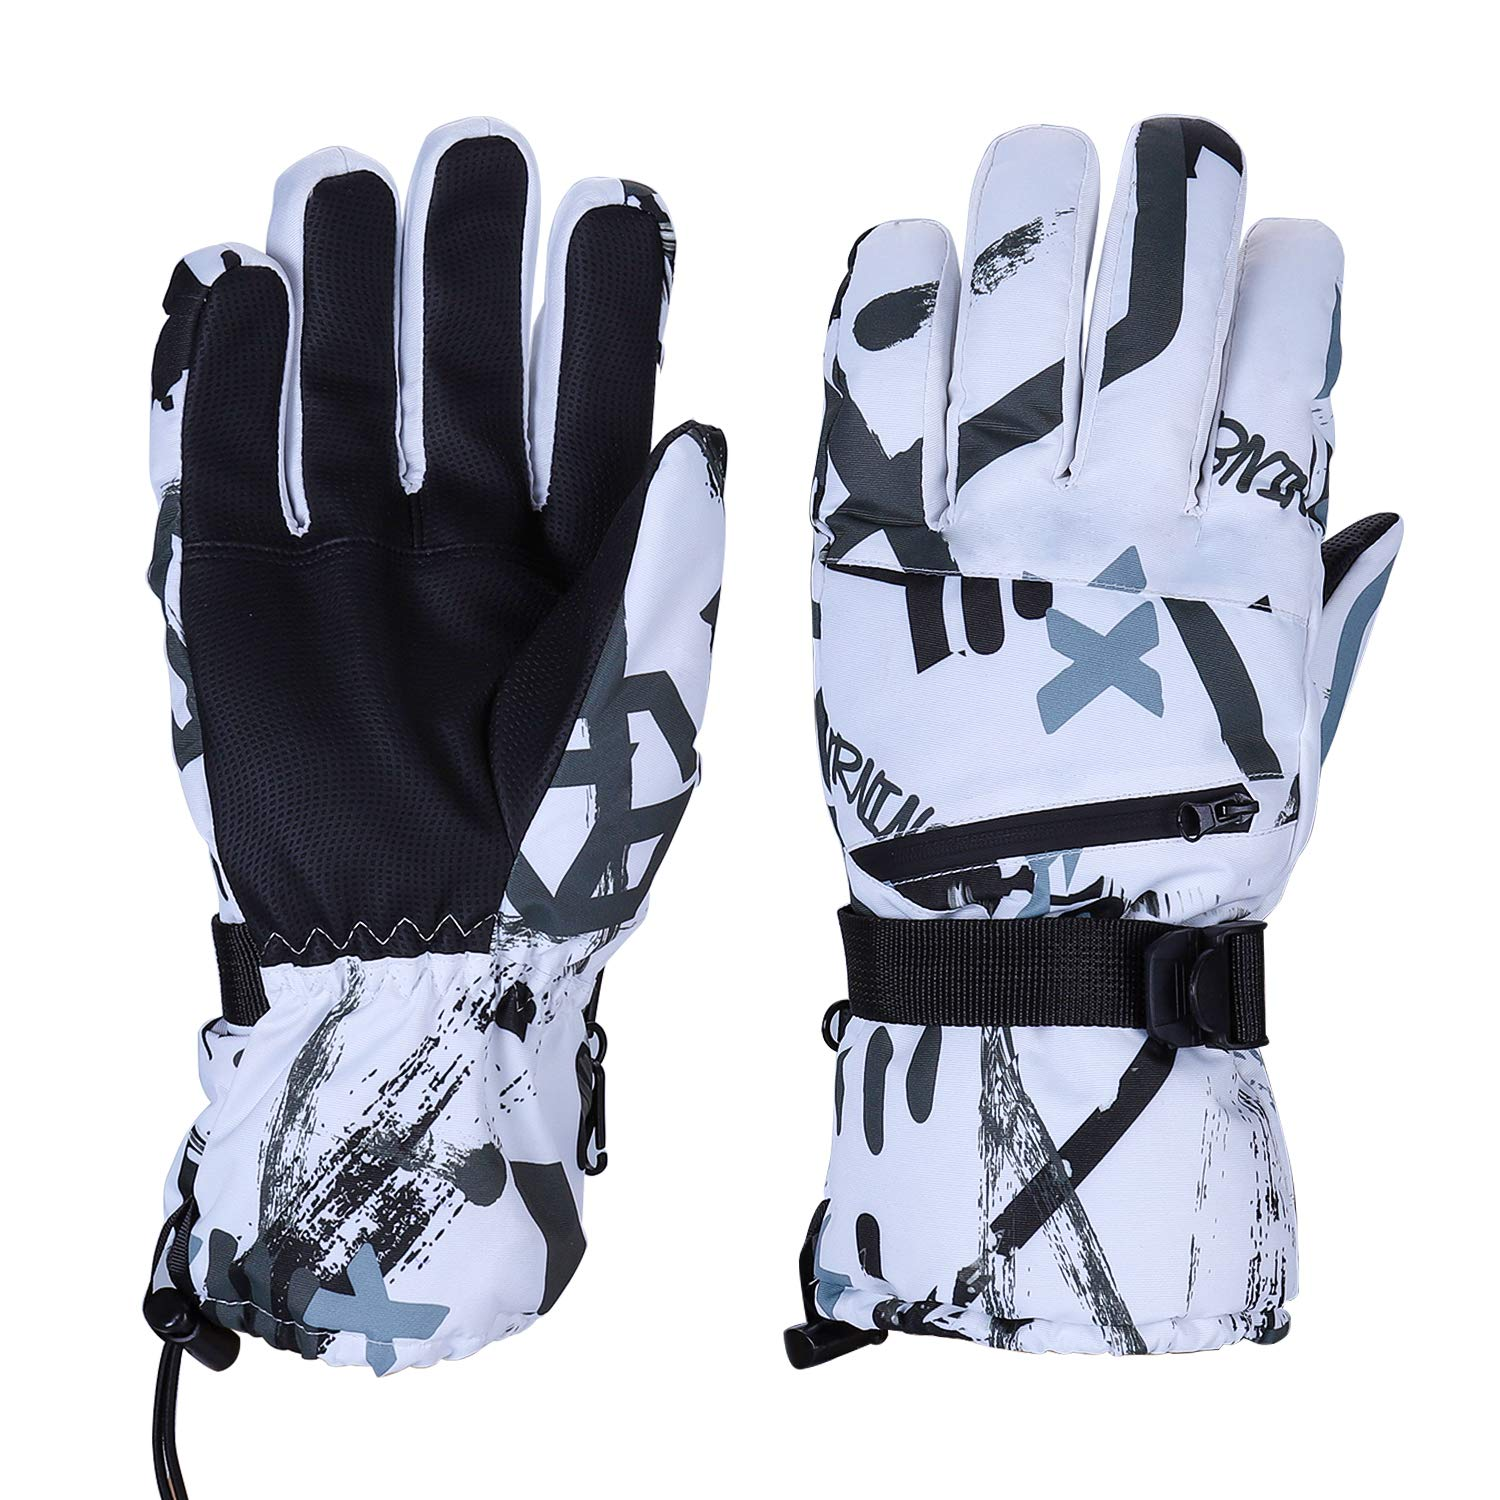 Auteve Ski Gloves Snowboard for Men Women, Touchscreen 3M Thinsulate Insulated Windproof Waterproof Breathable